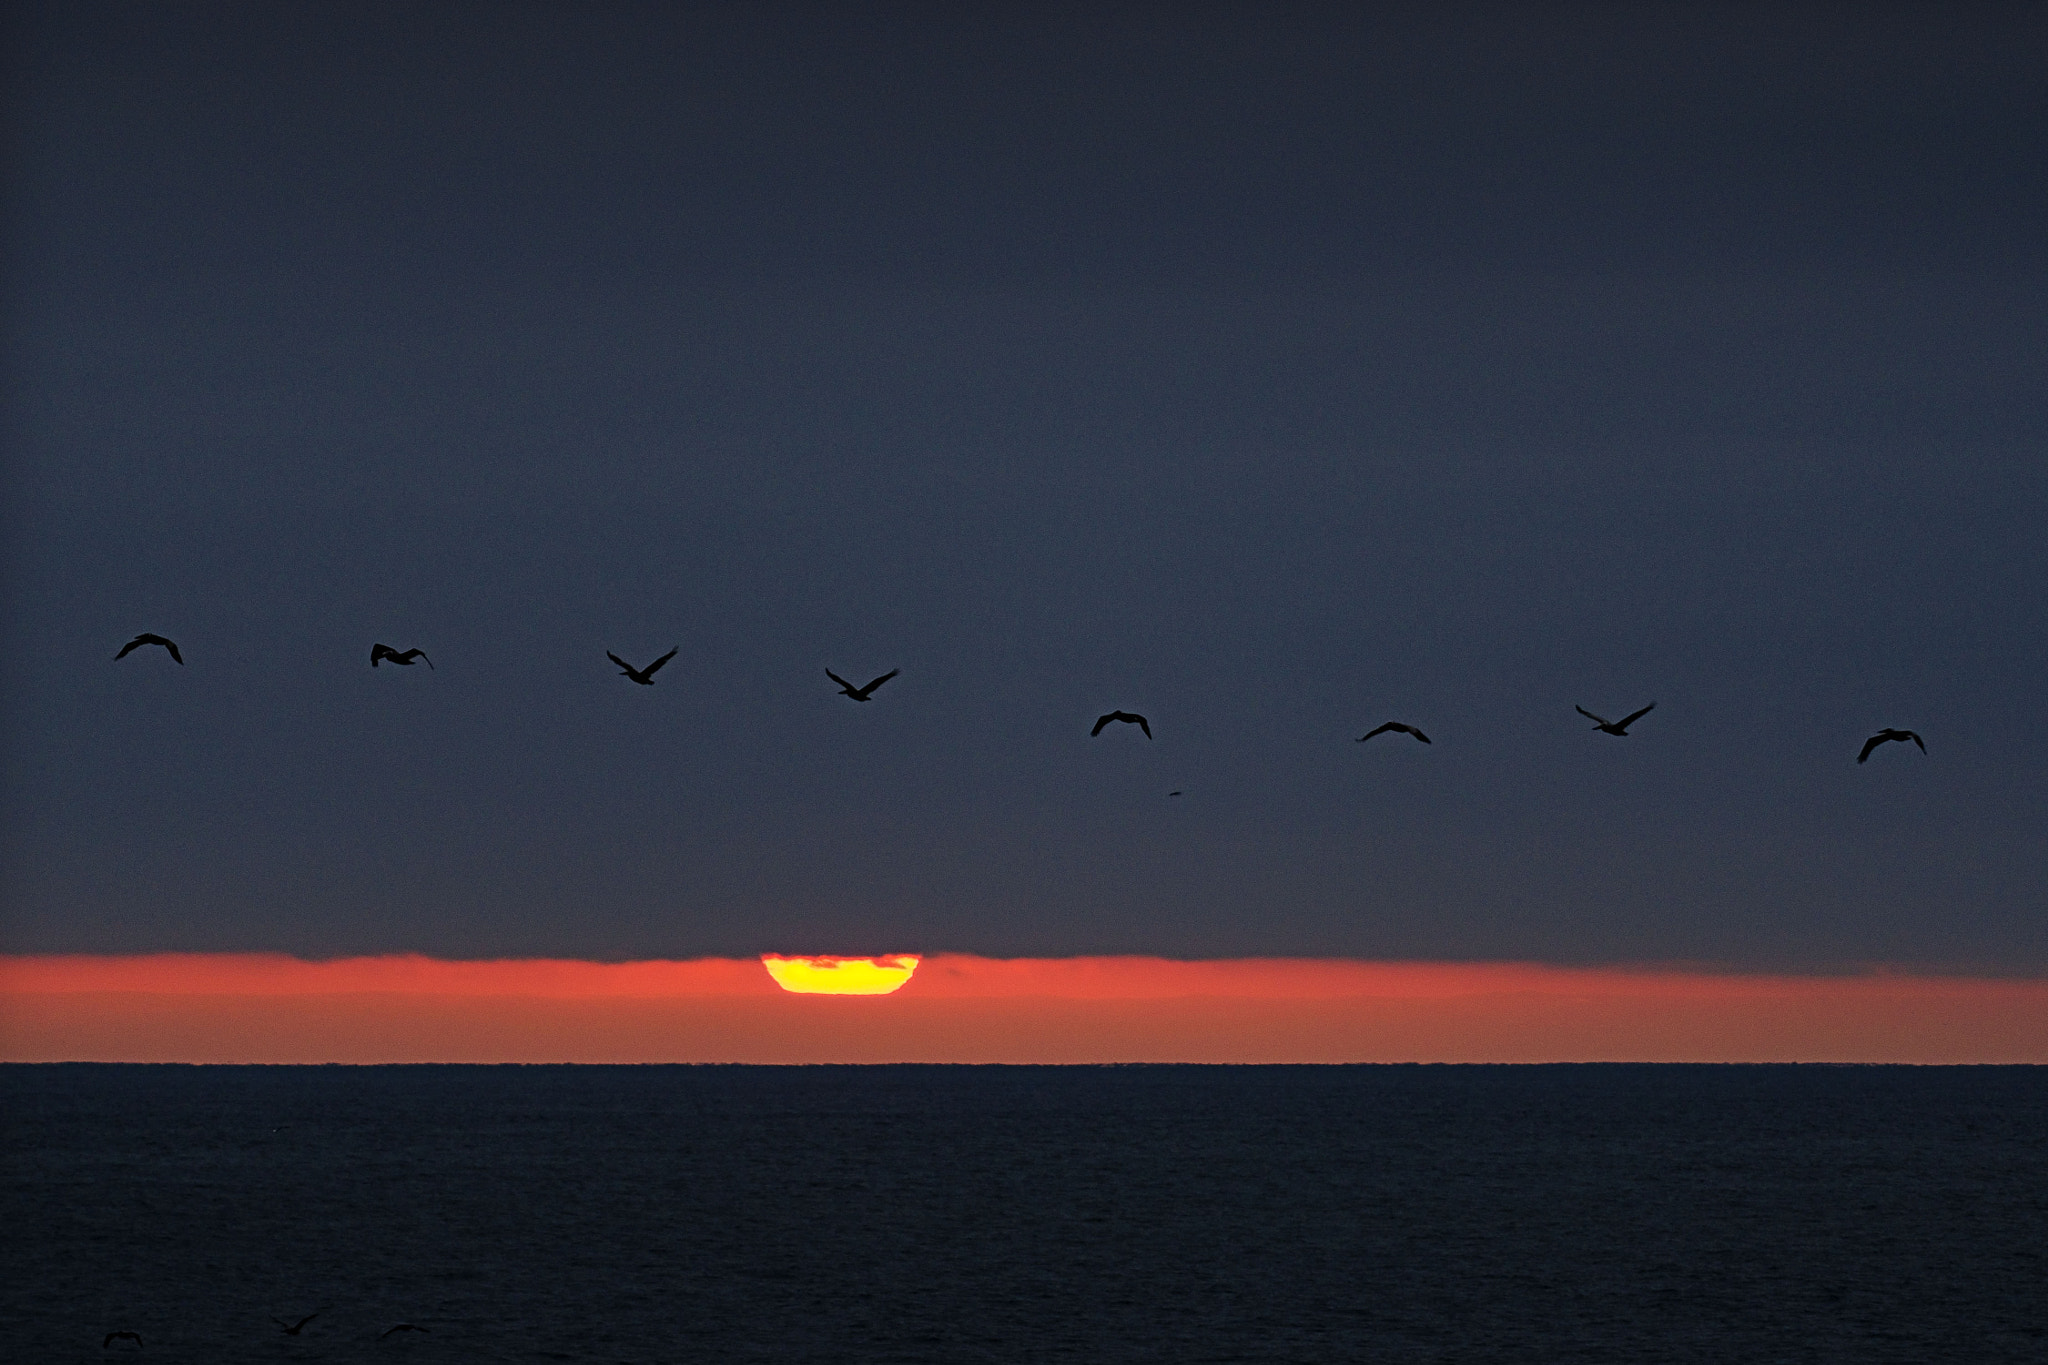 Photograph Pelicans at Sunset in Oceanside. June 14, 2012 by Rich Cruse on 500px